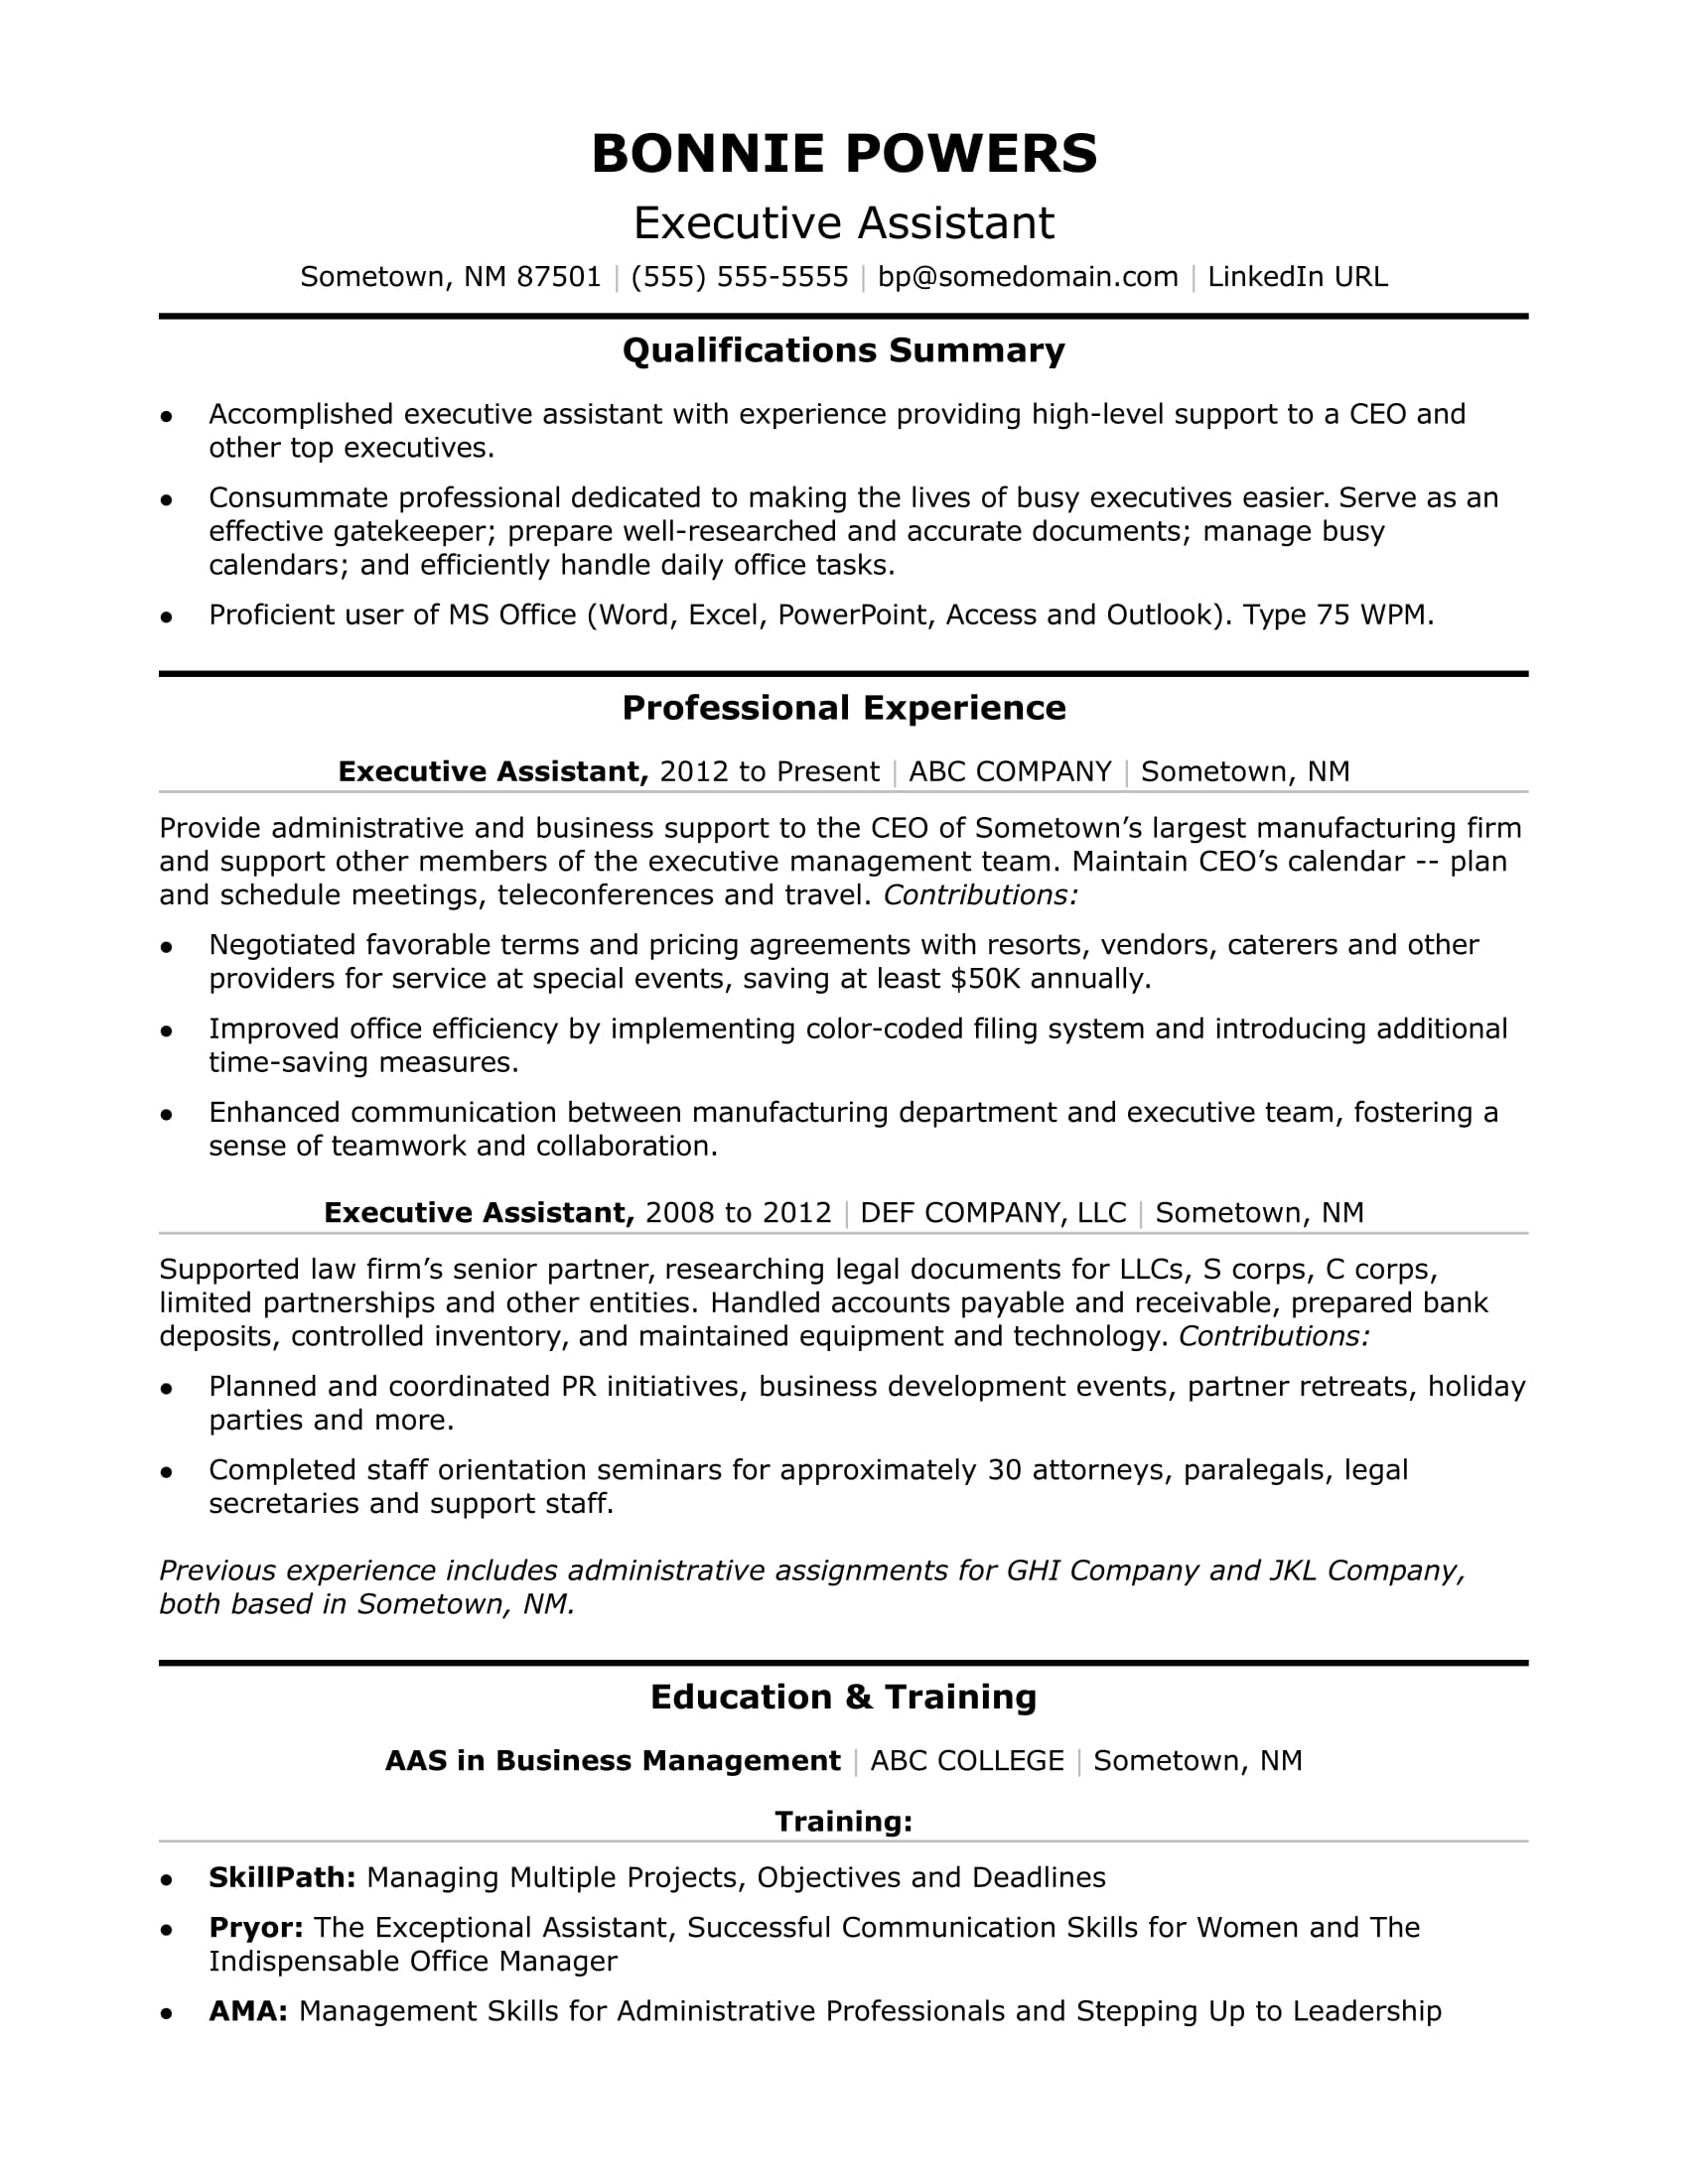 Sample Resumes For Administrative Assistant Positions Executive Administrative Assistant Resume Sample Monster